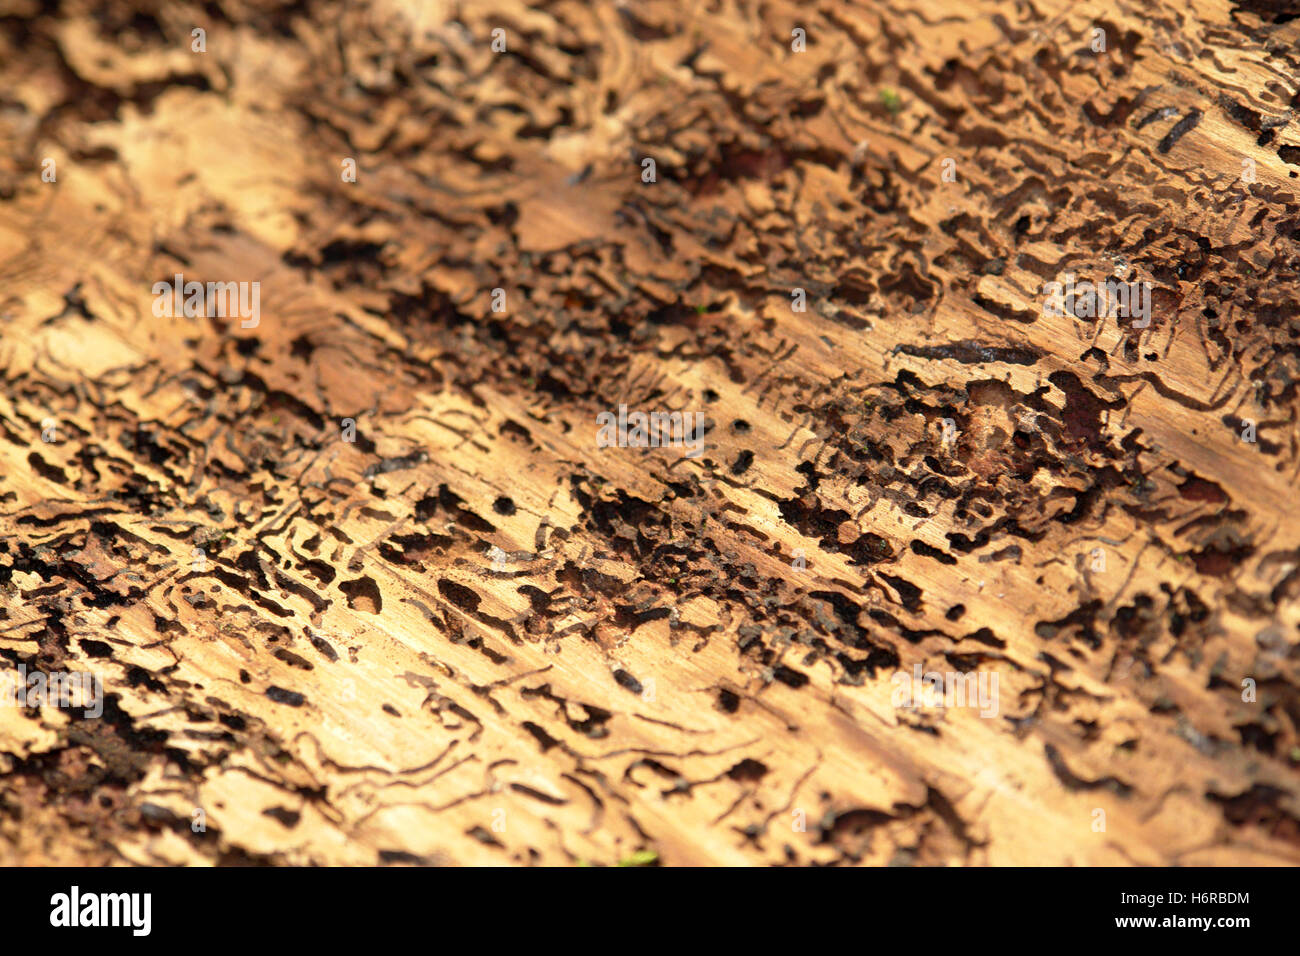 bark holey bark beetle format-filling perforated animal insect wood beetle bark plague monitoring holey hole abstract - Stock Image